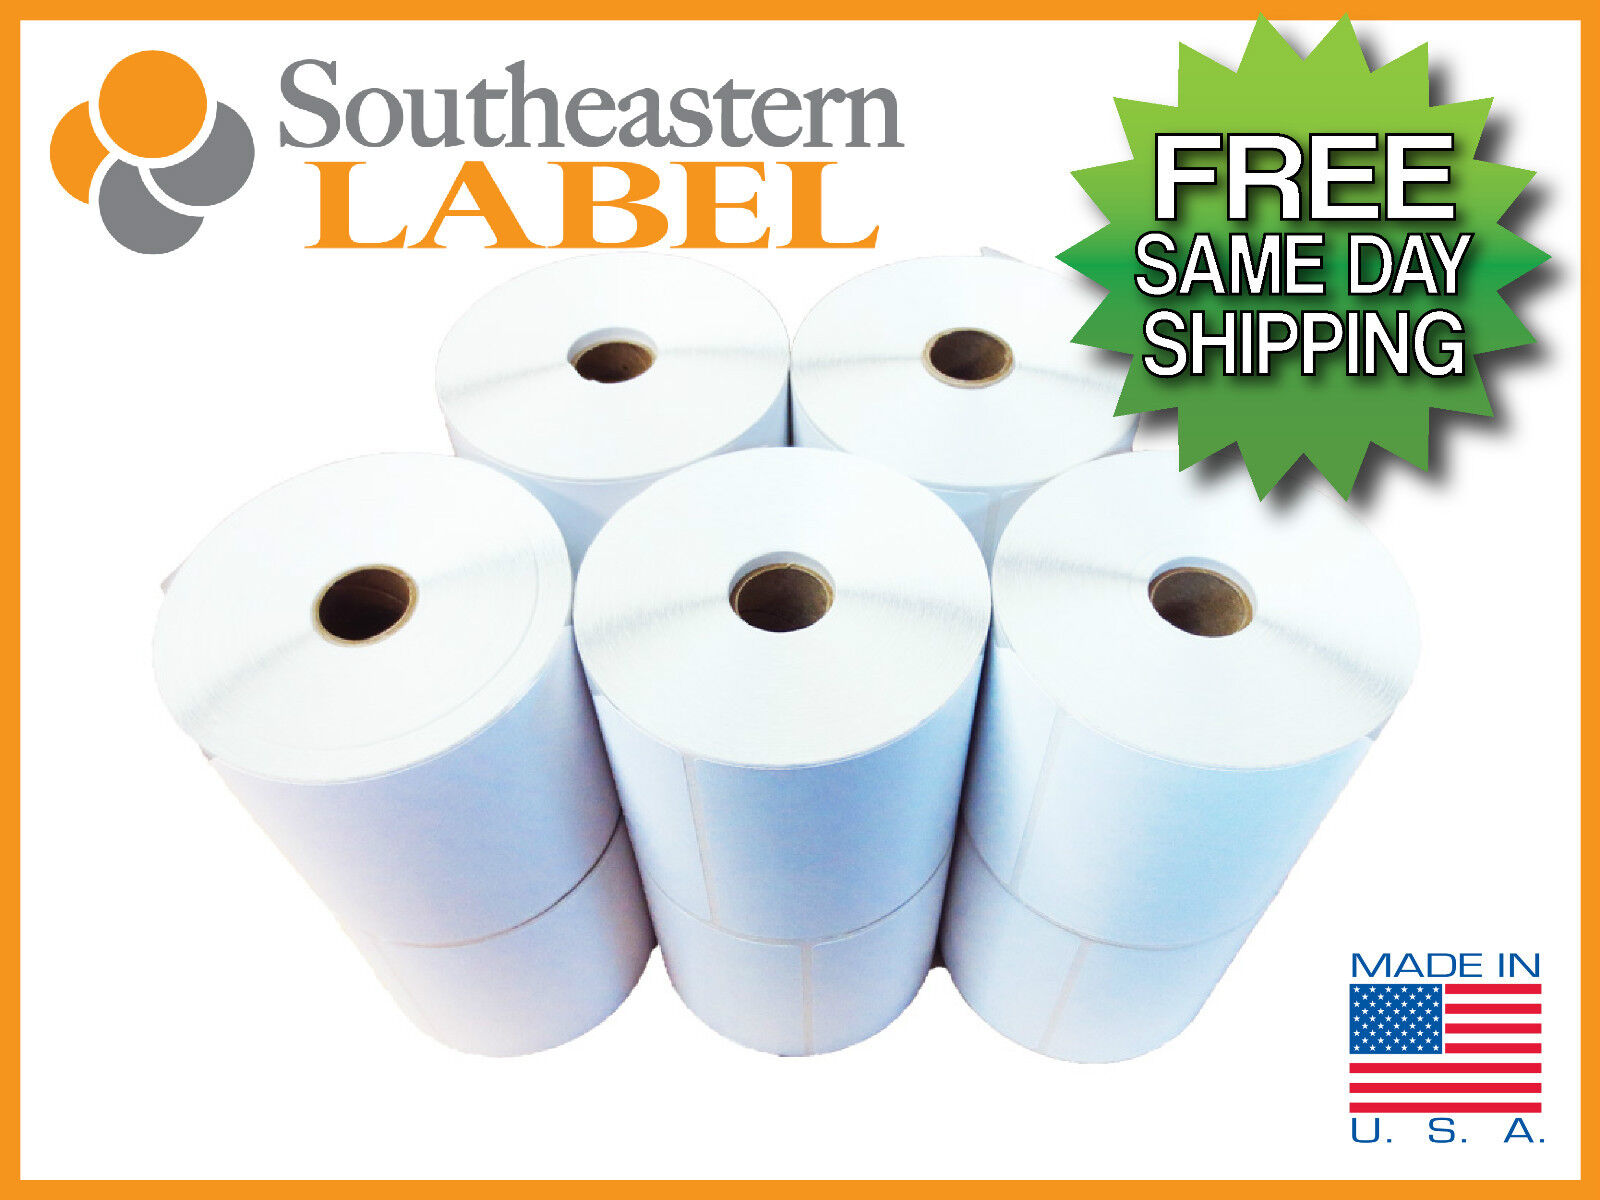 4x6 Direct Thermal Label 20 rolls 450 roll Zebra Eltron 2844  FREE SHIPPING